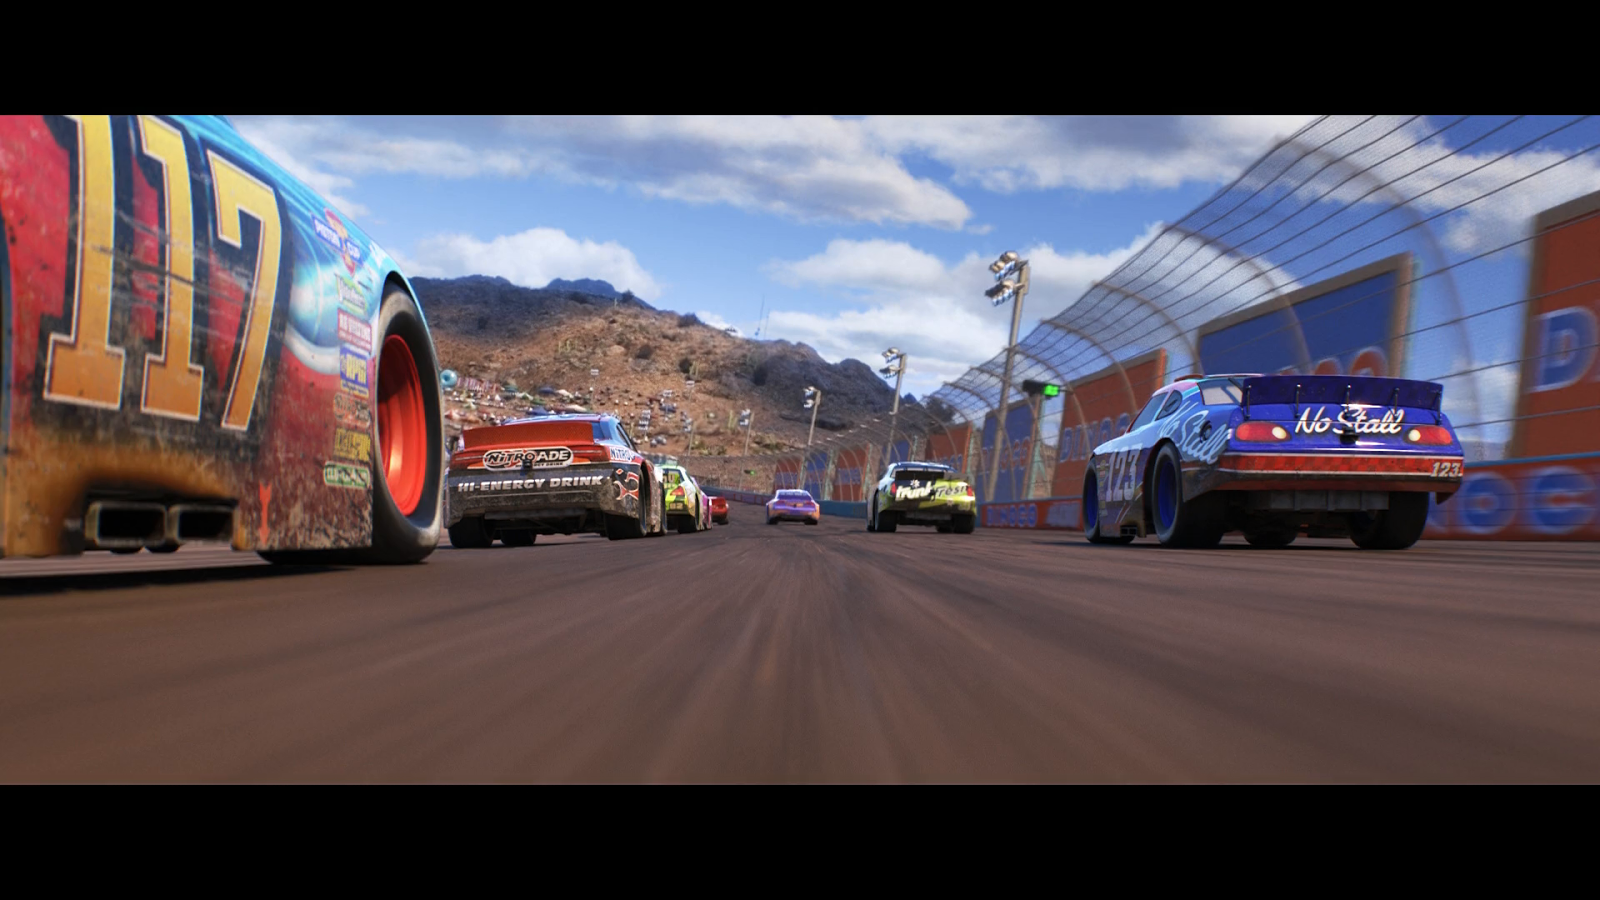 Cars 3 (2017) BRRip 1080p Español Latino - Ingles captura 2